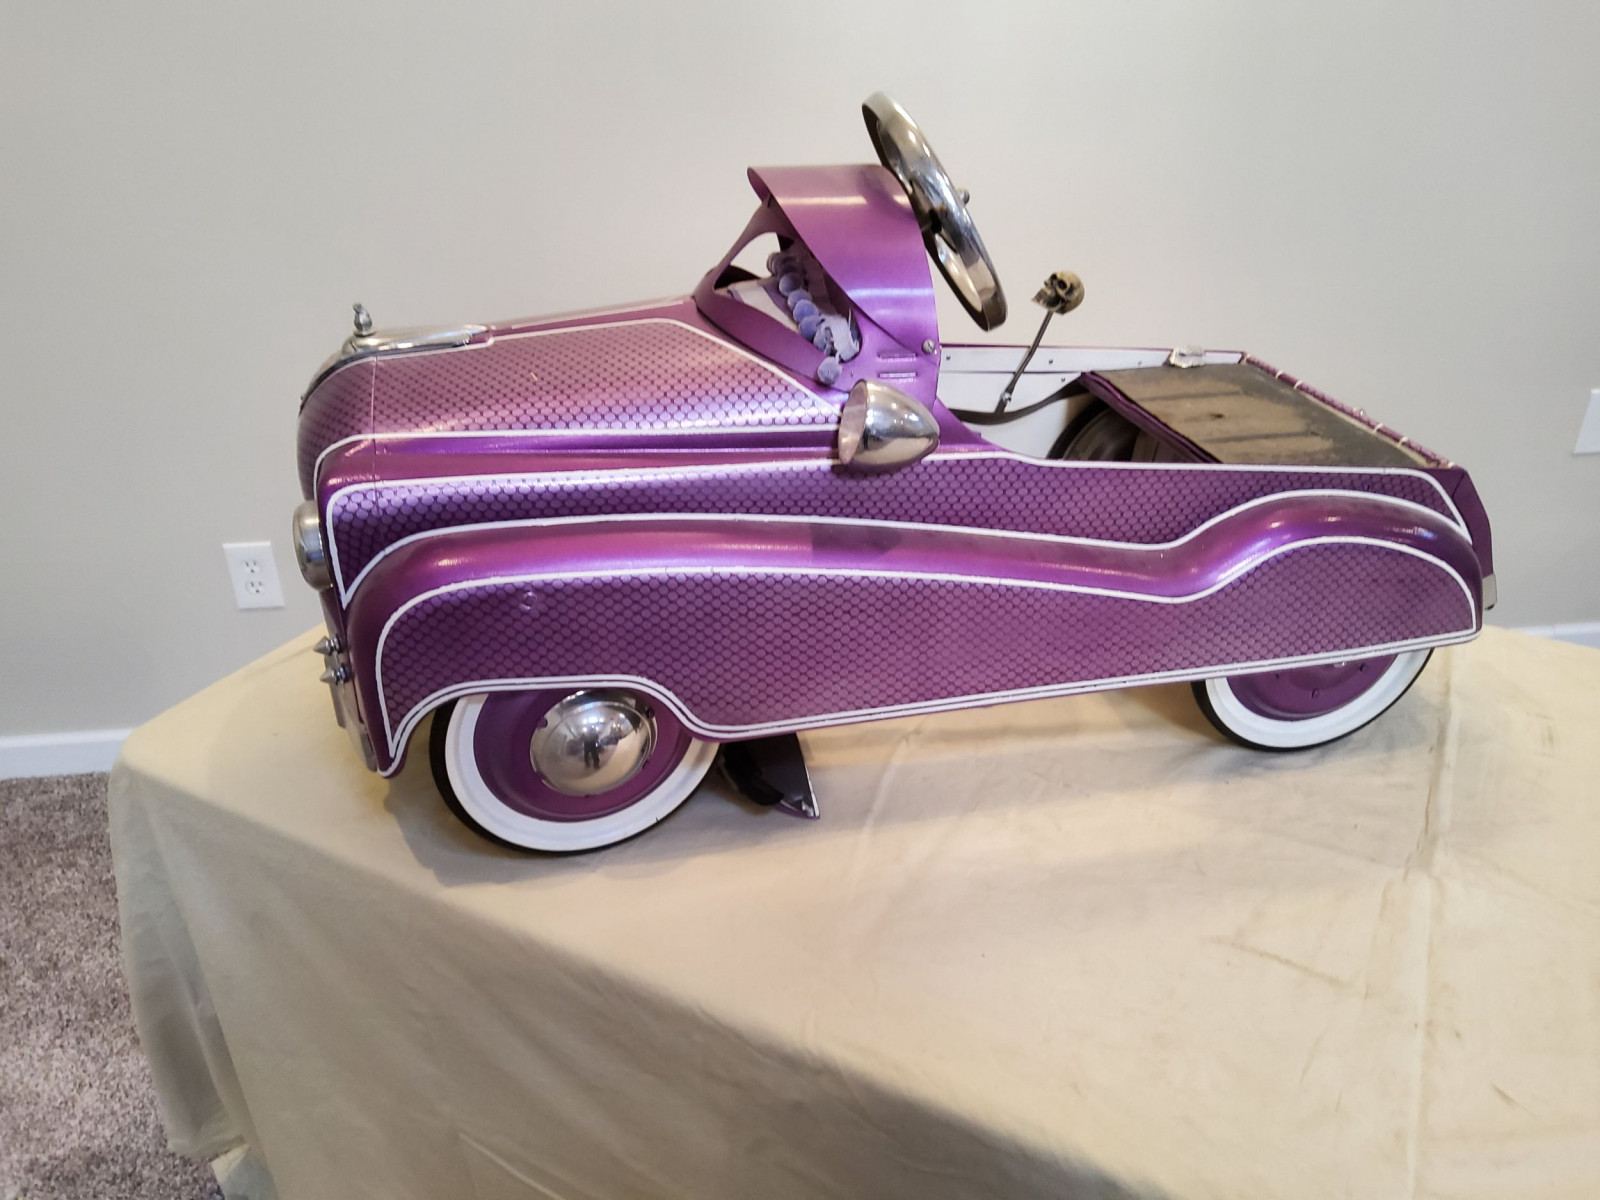 1959 Murray Dipside Custom Pedal Car - Image 5